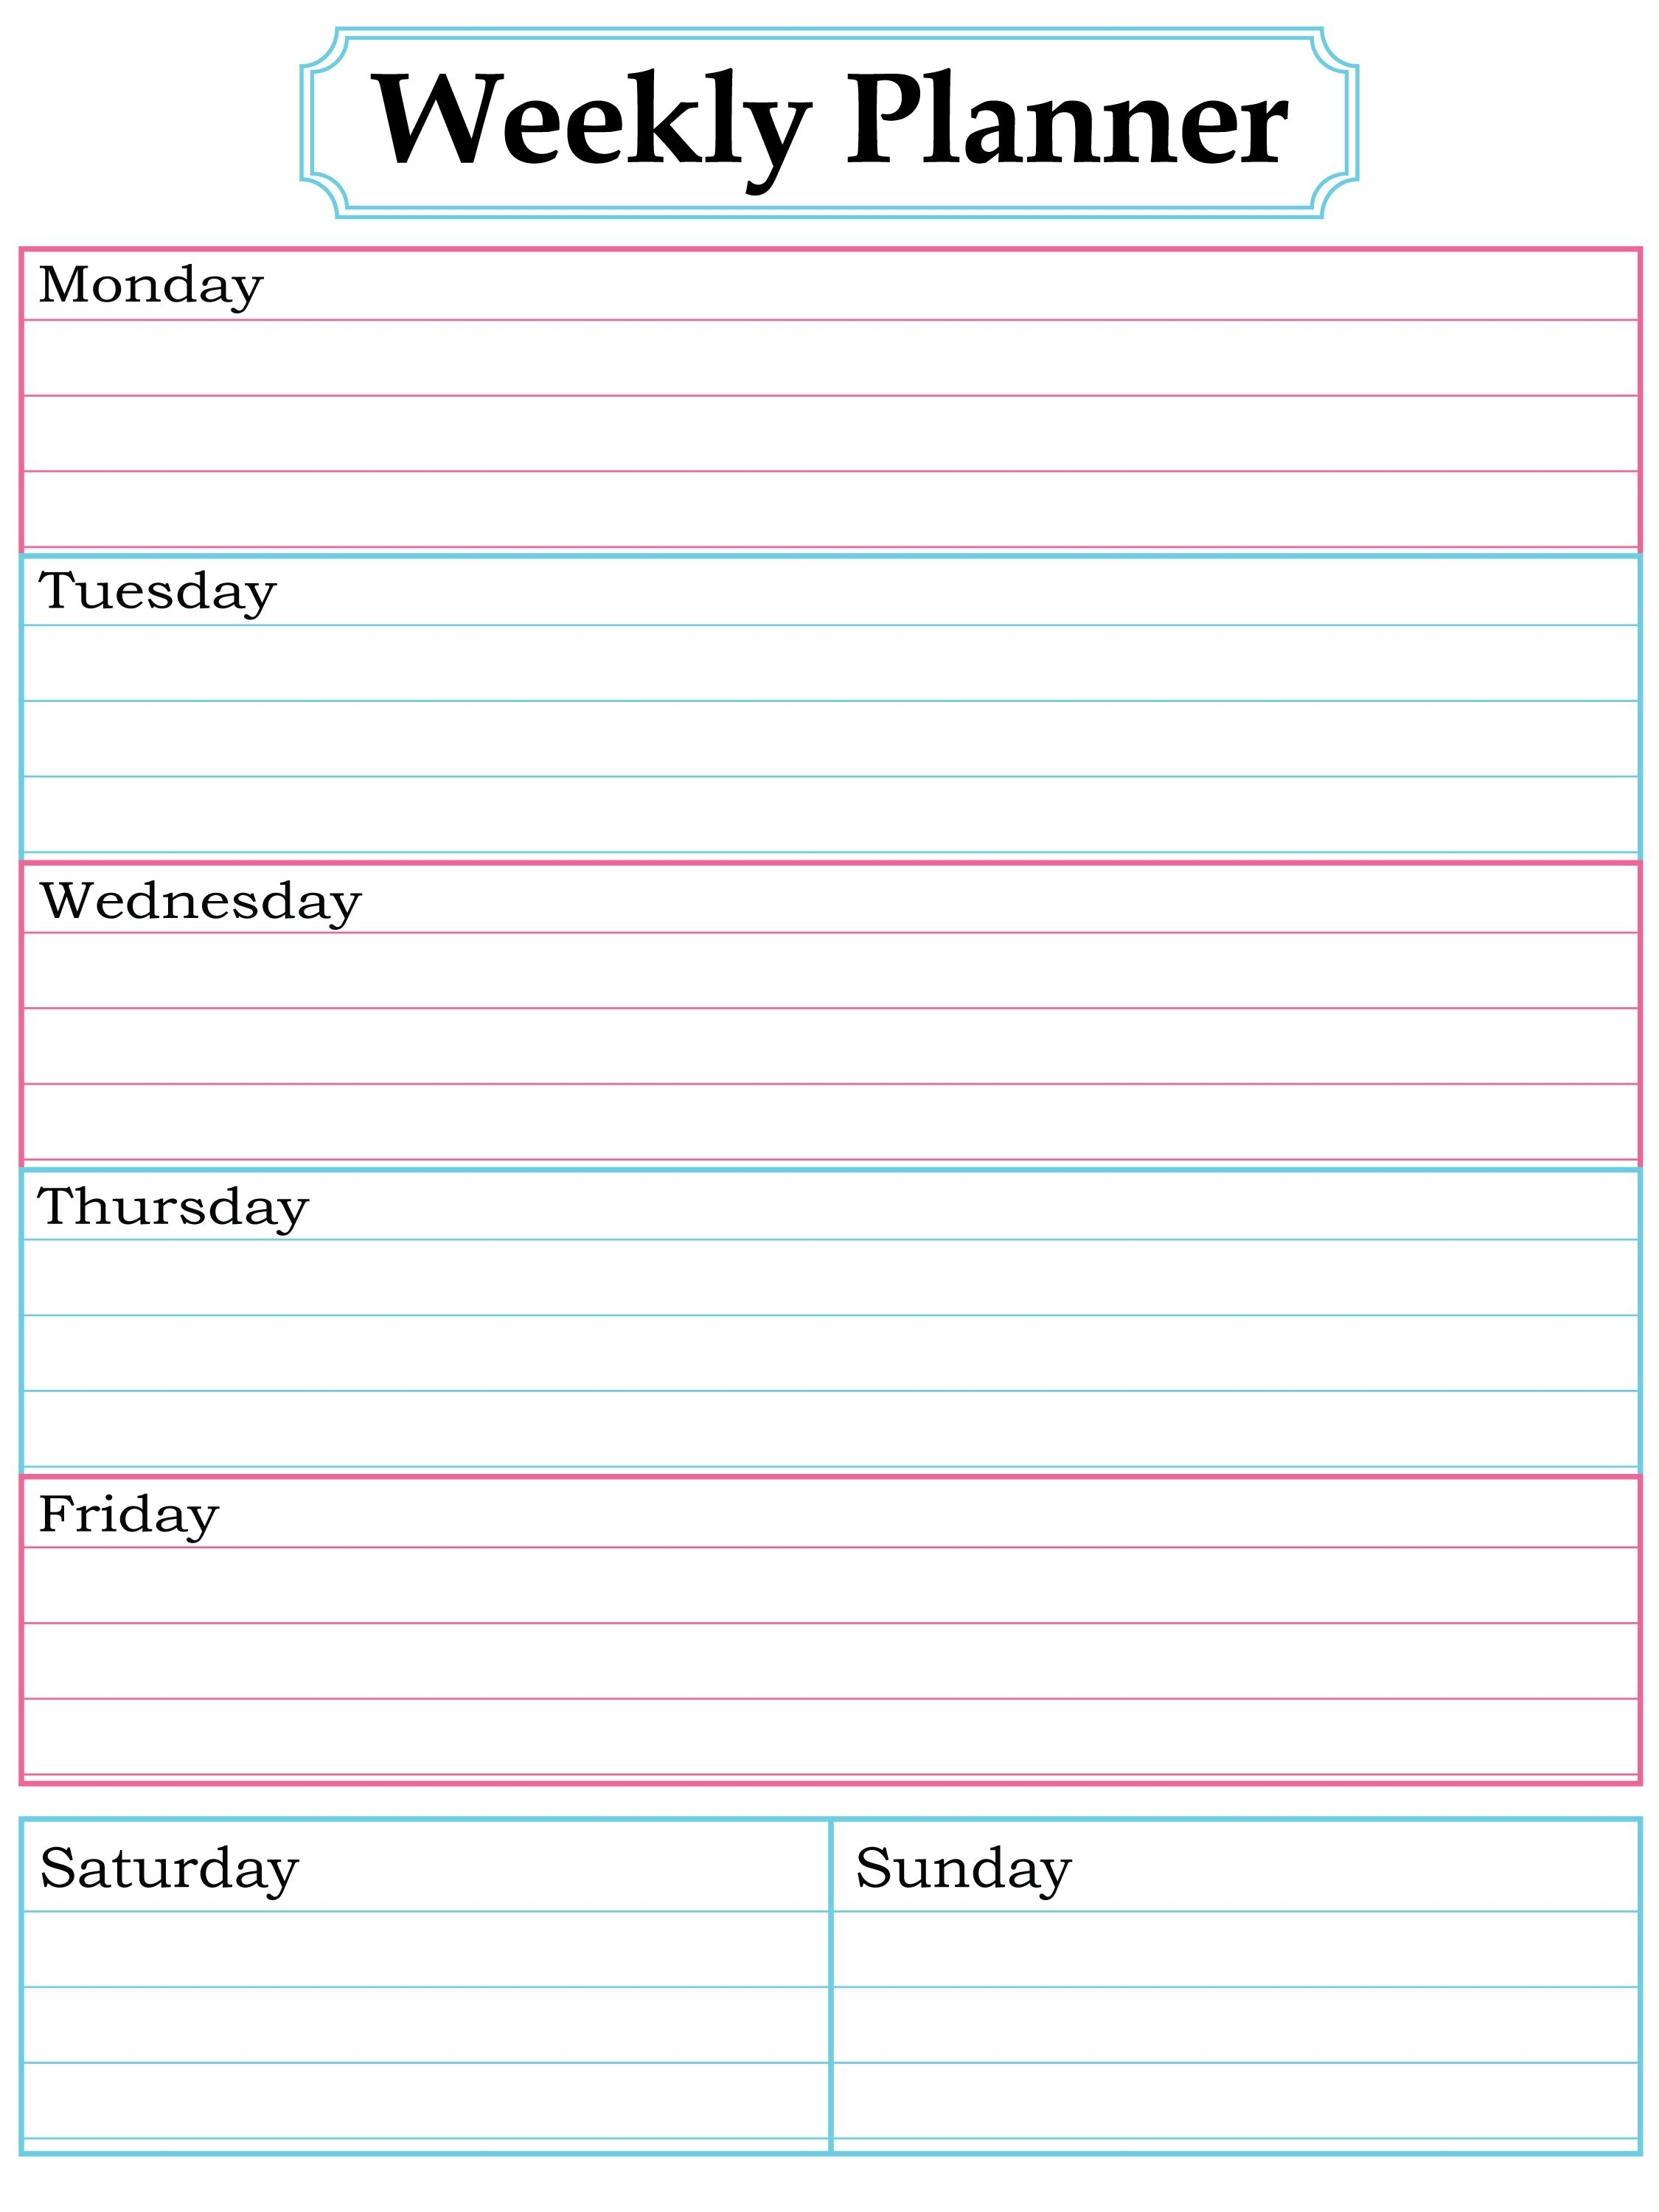 Weekly planner printable nice simple clean lines Easy room planner tool